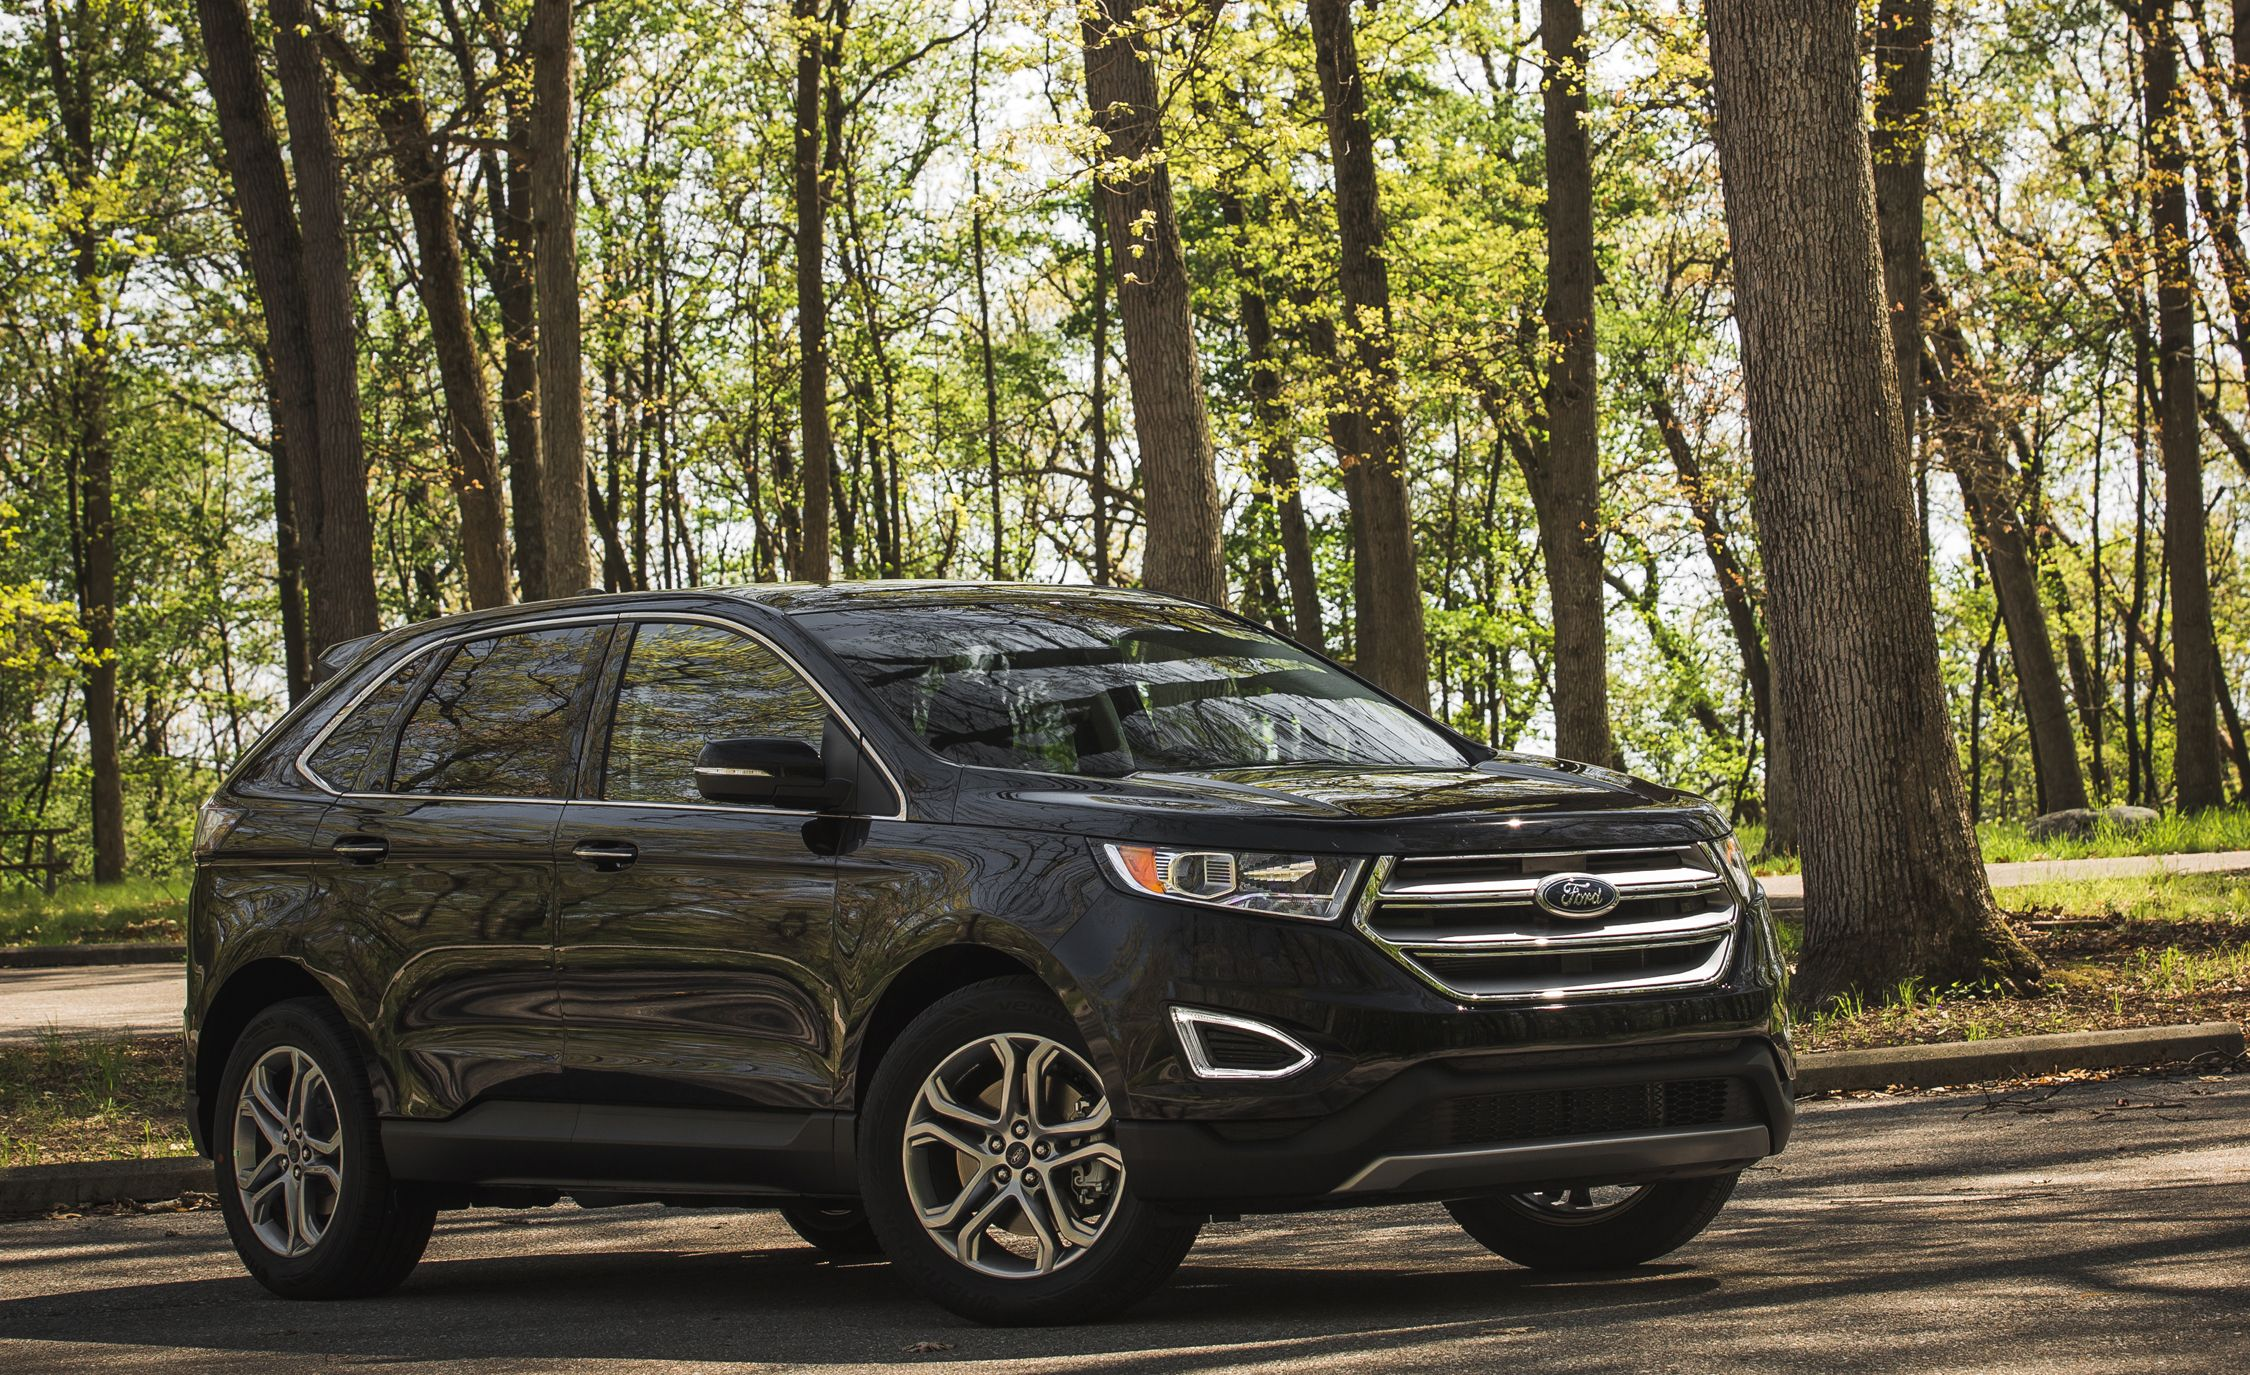 2018 Ford Edge | Fuel Economy Review | Car and Driver